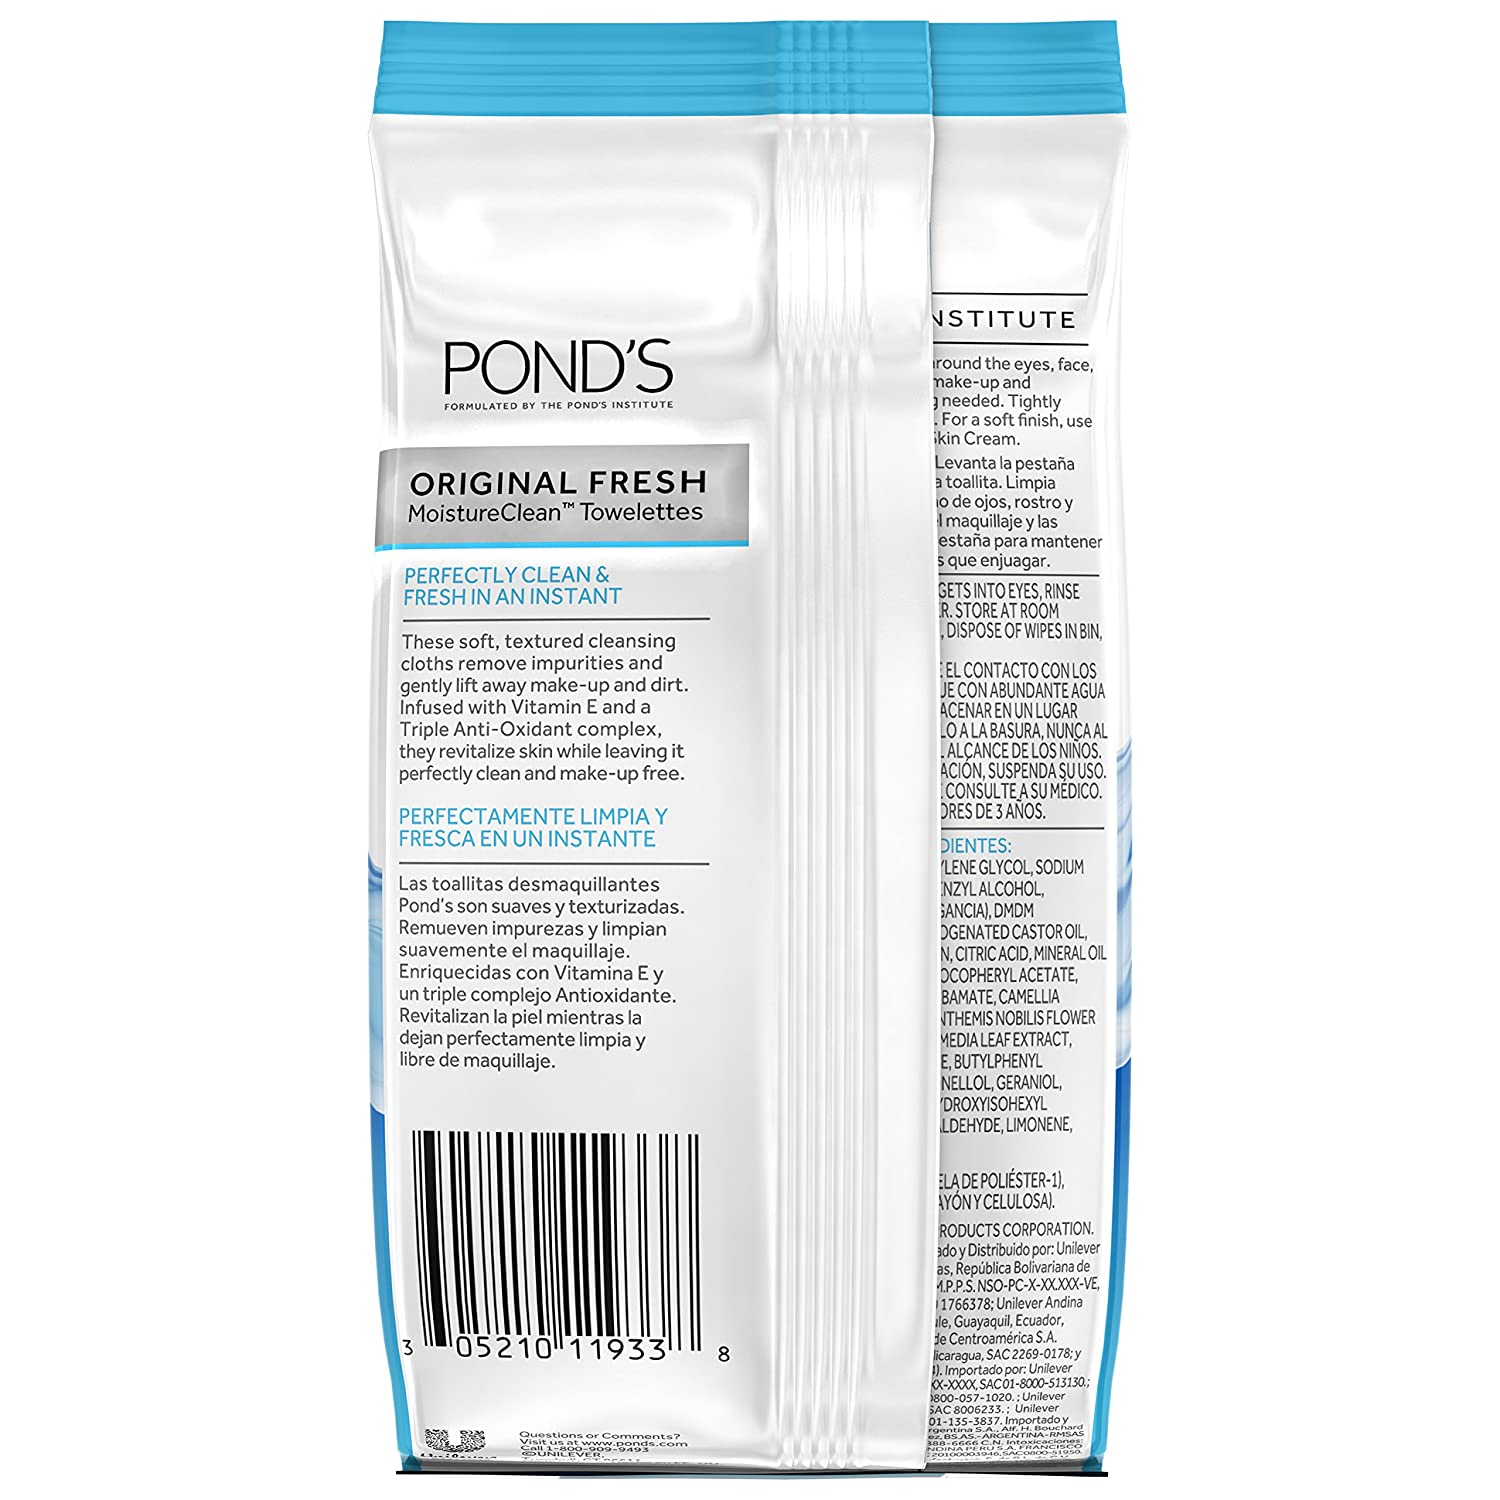 Amazon.com: Ponds MoistureClean Towelettes, Original Fresh Makeup Remover Wipes with Vitamin E 15 ea: Beauty